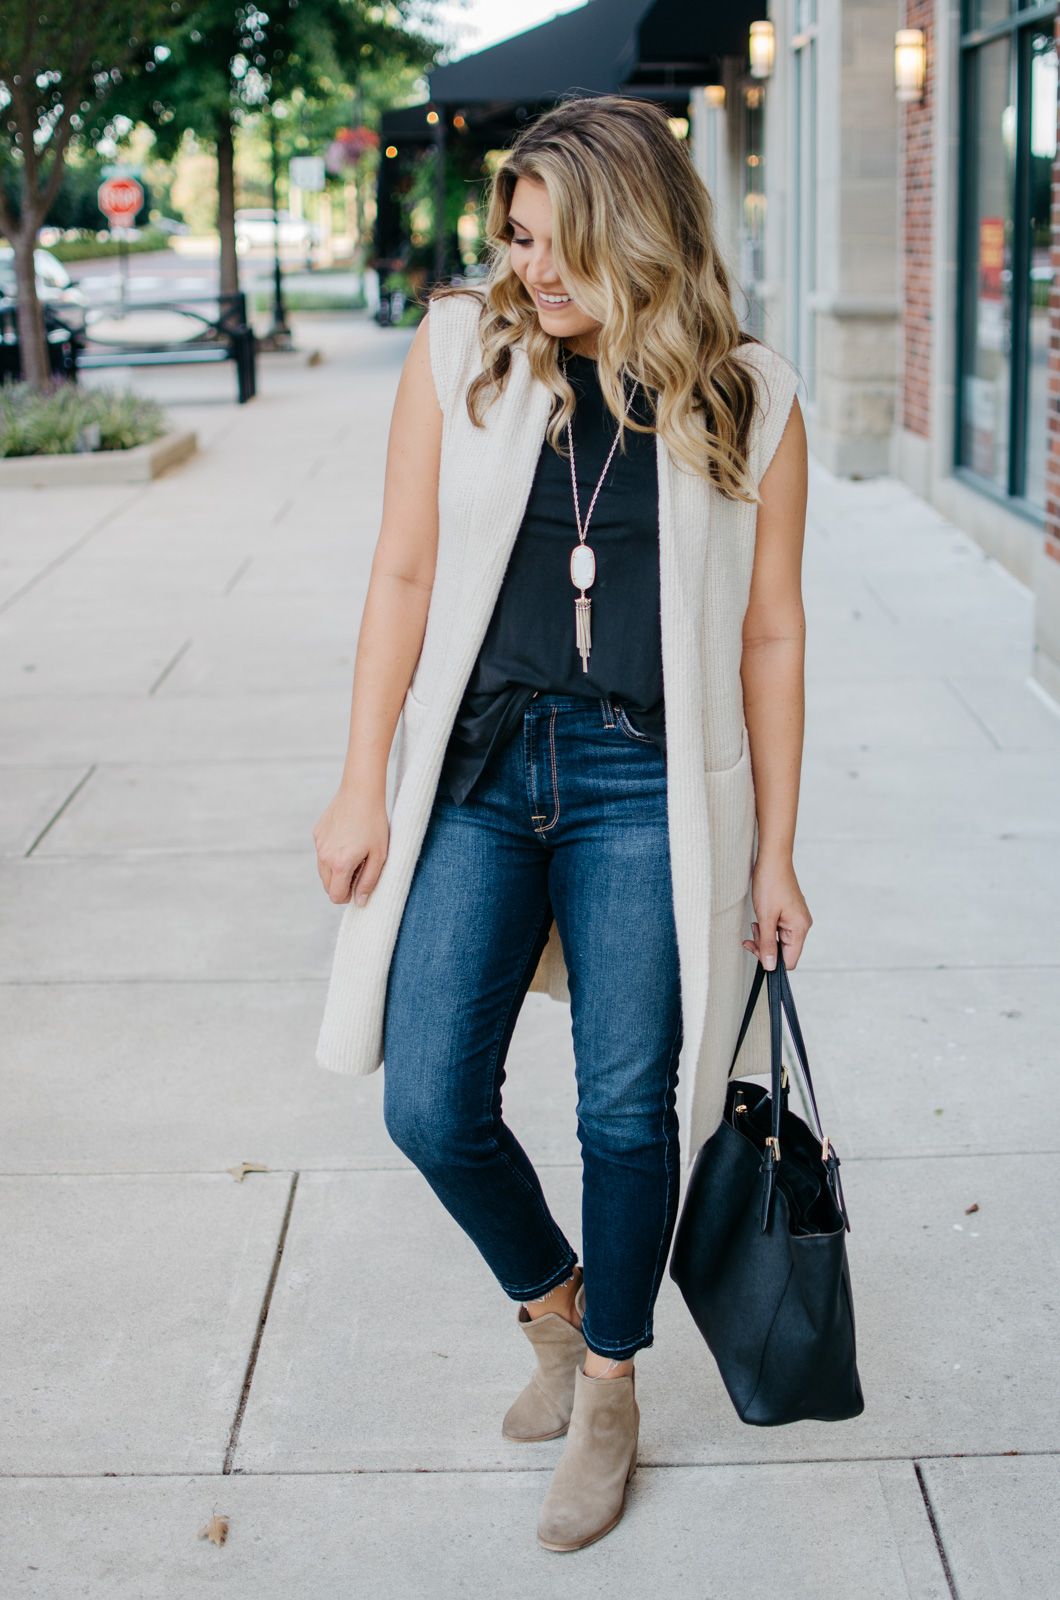 sleeveless sweater vest outfit | Want to know how to wear a sleeveless sweater? I'm sharing two outfit ideas in today's post! bylaurenm.com